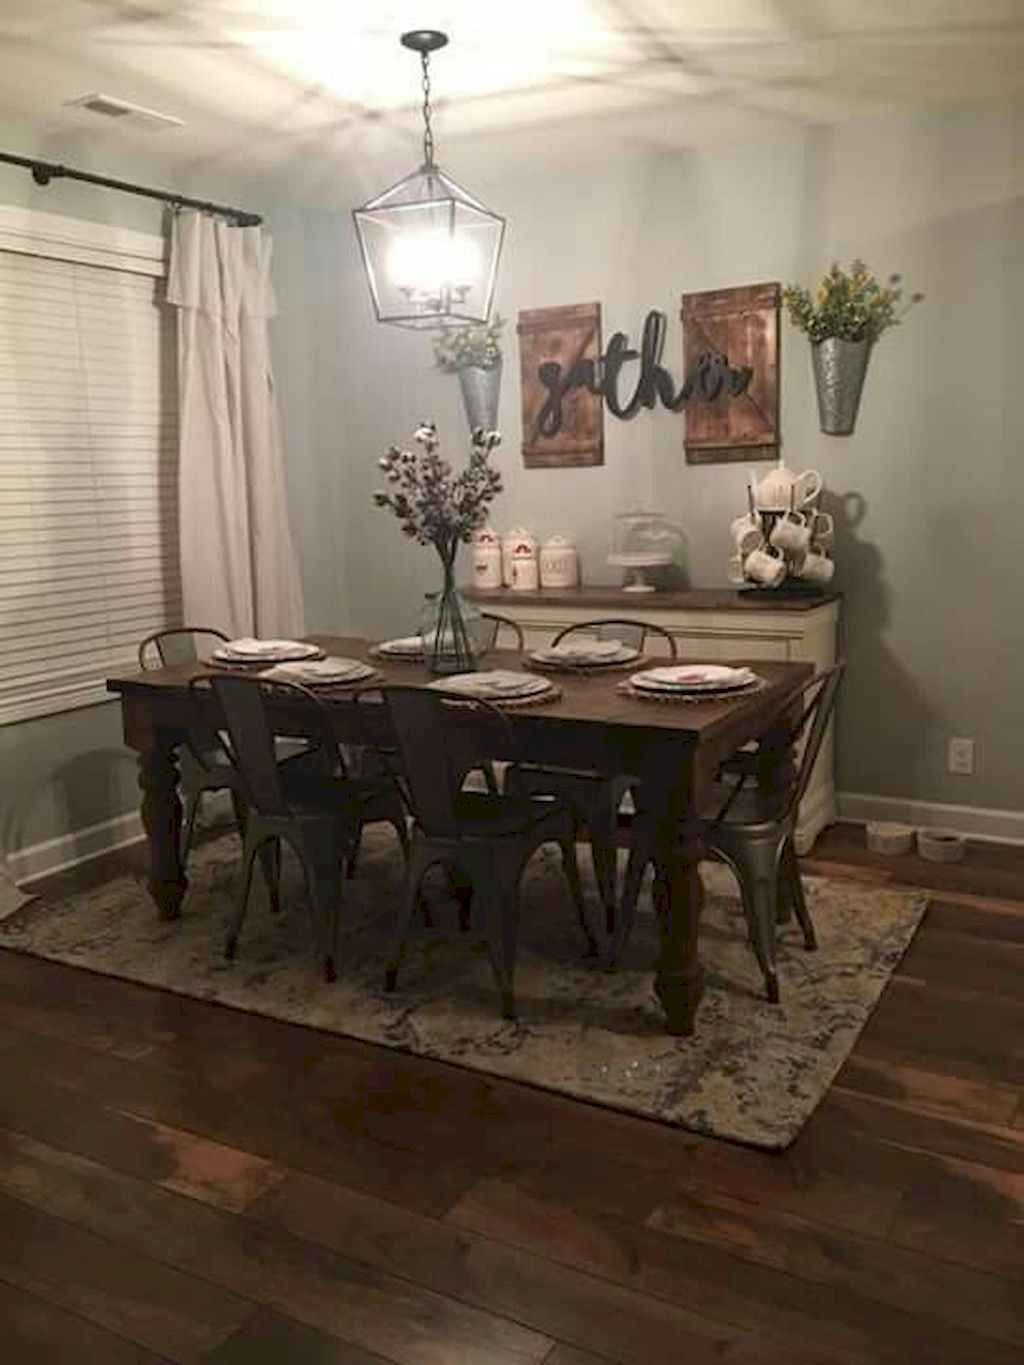 60 Farmhouse Dining Room Decorating Ideas images